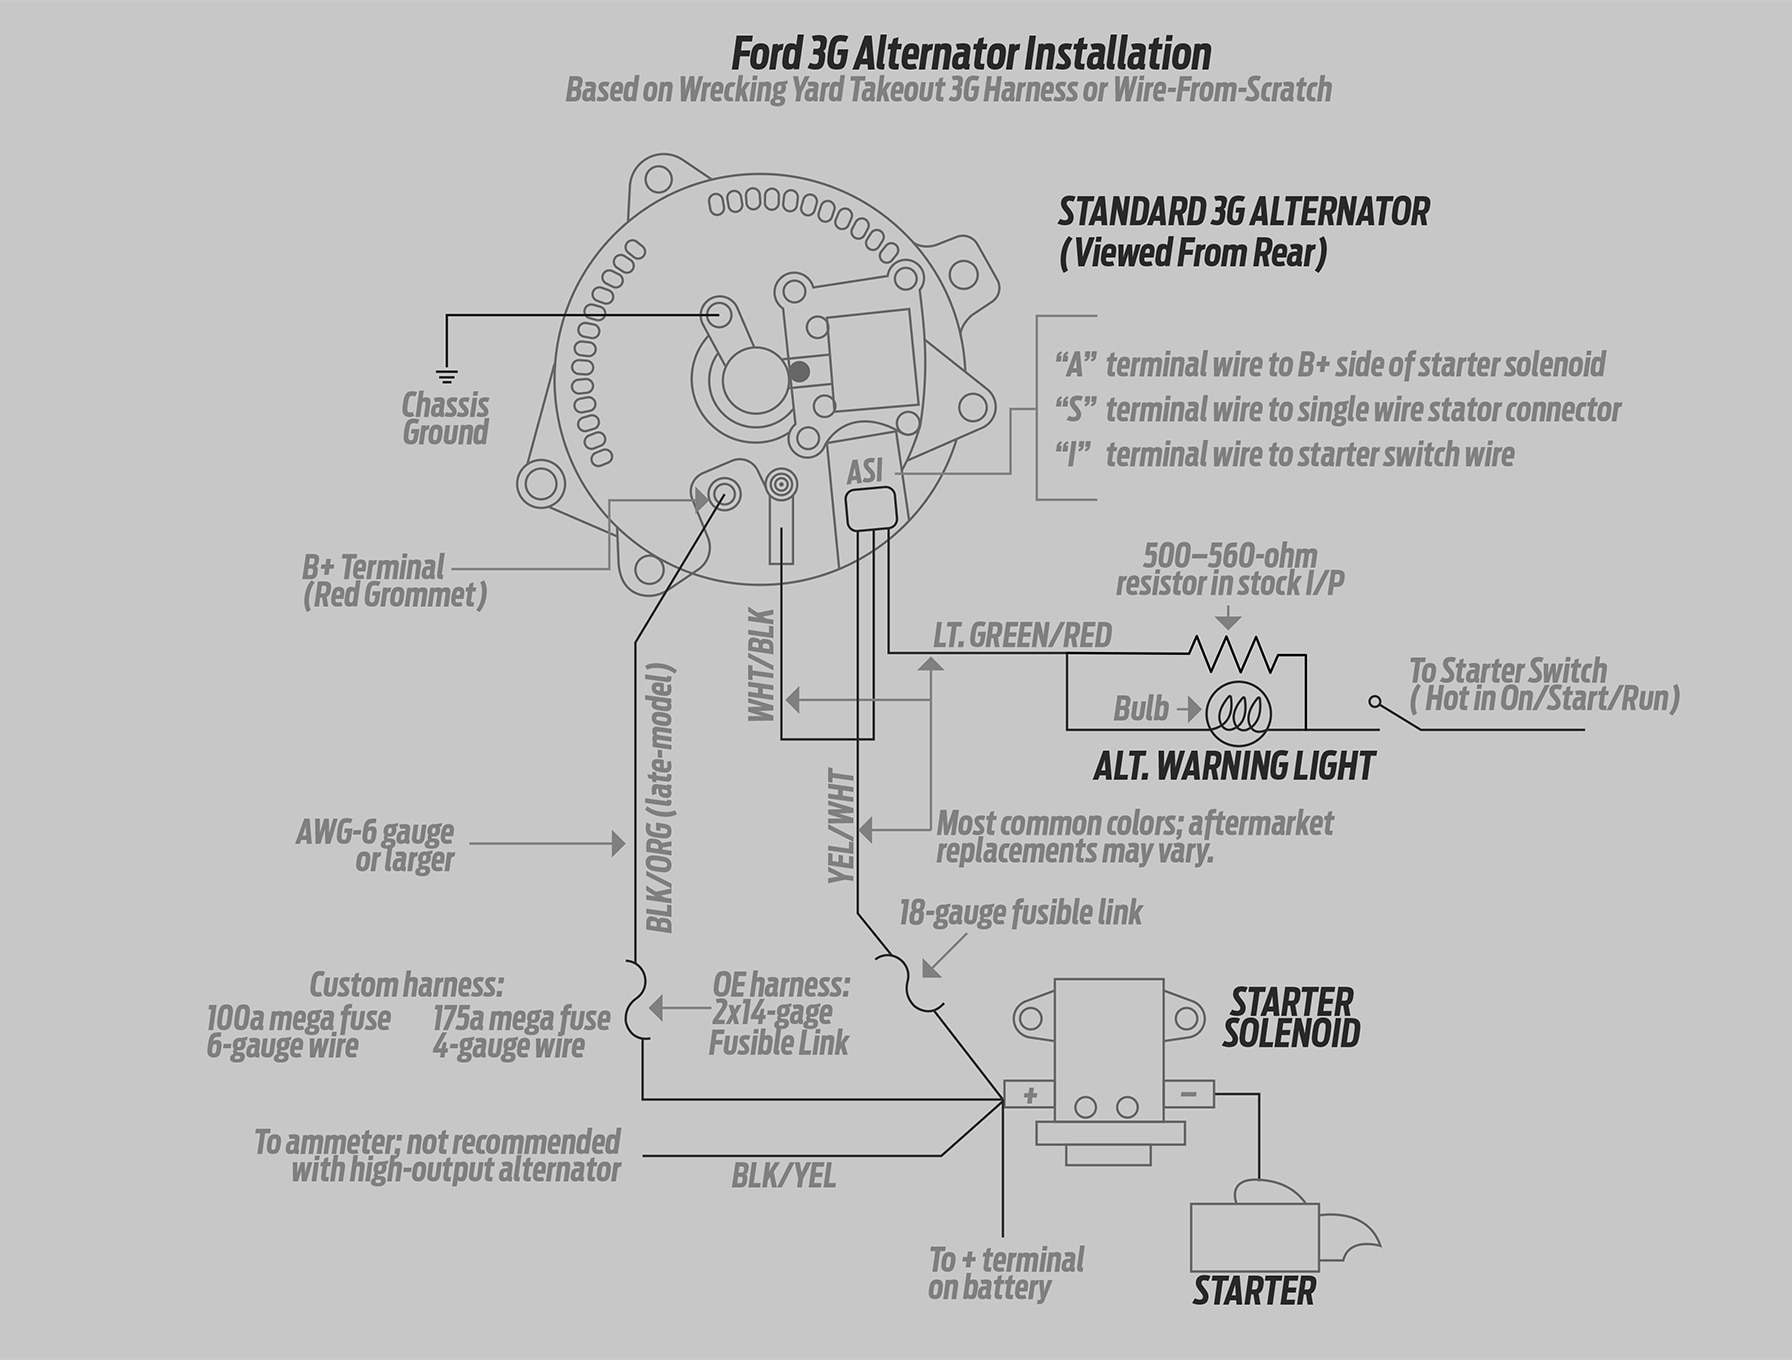 medium resolution of ford 3g alternator wiring harness wiring diagram experthow to install a high output ford 3g alternator